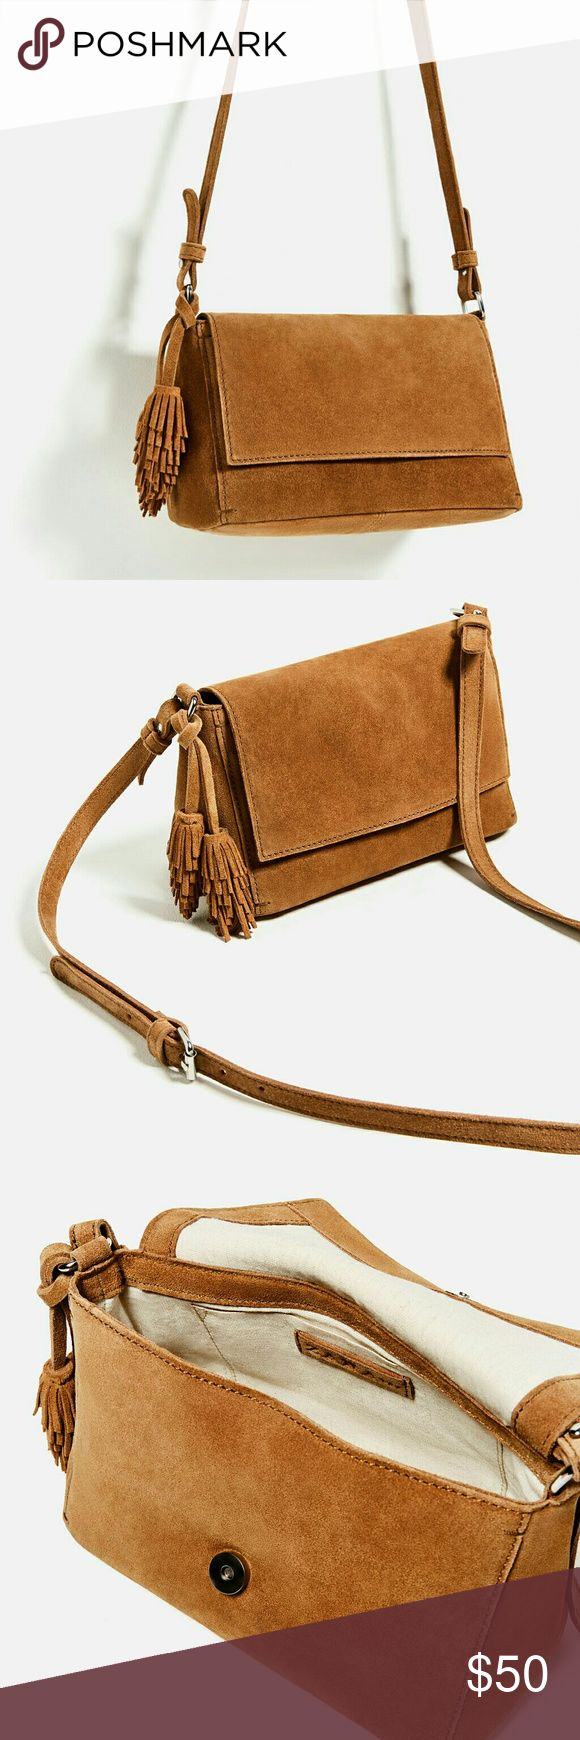 Zara Suede Bag NWT New with tags. Bought it from Zara online. Zara Bags